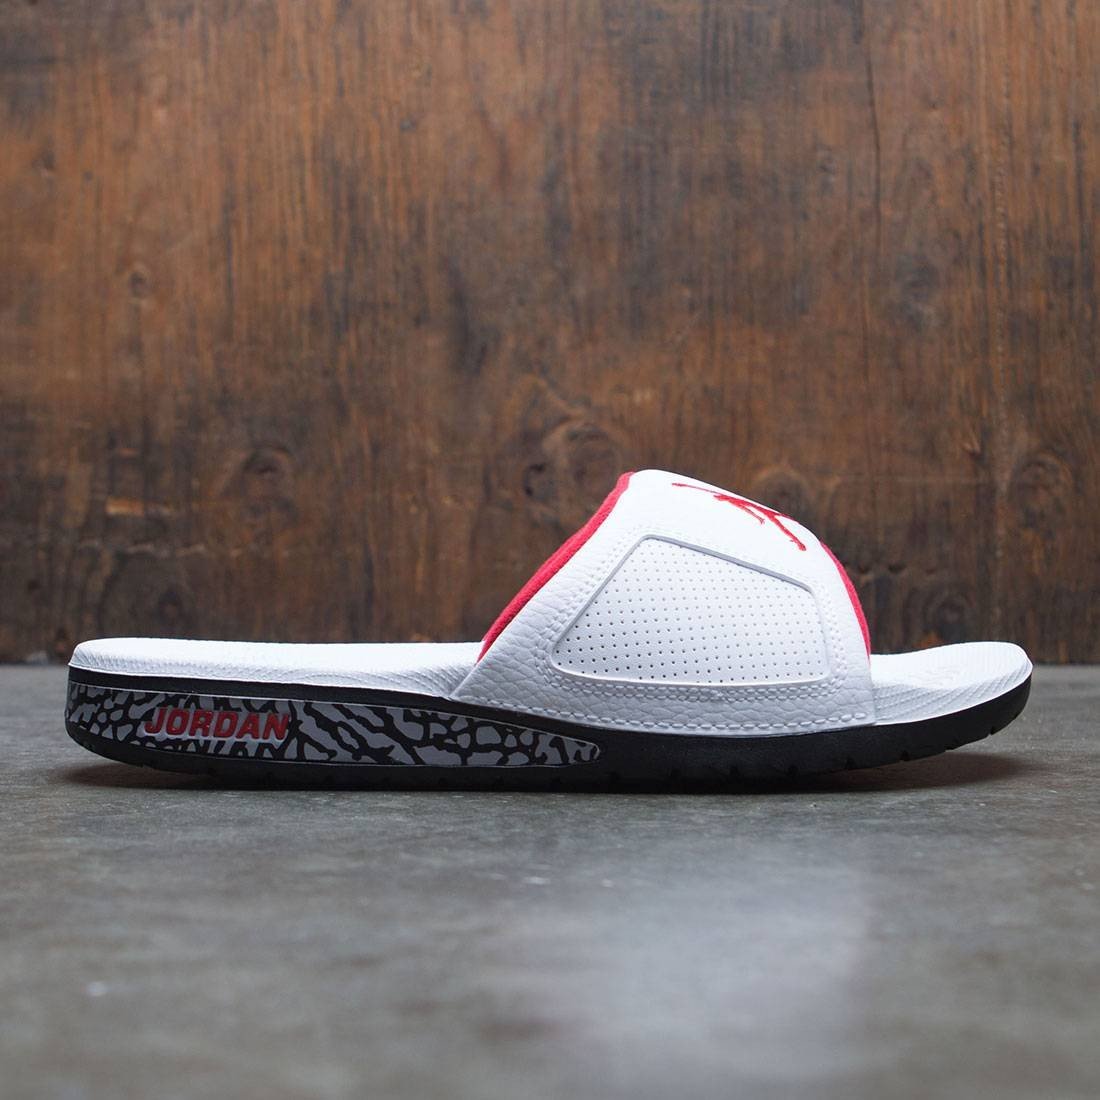 81aab31b2b8435 jordan men jordan hydro iii retro slide white university red black cement  grey